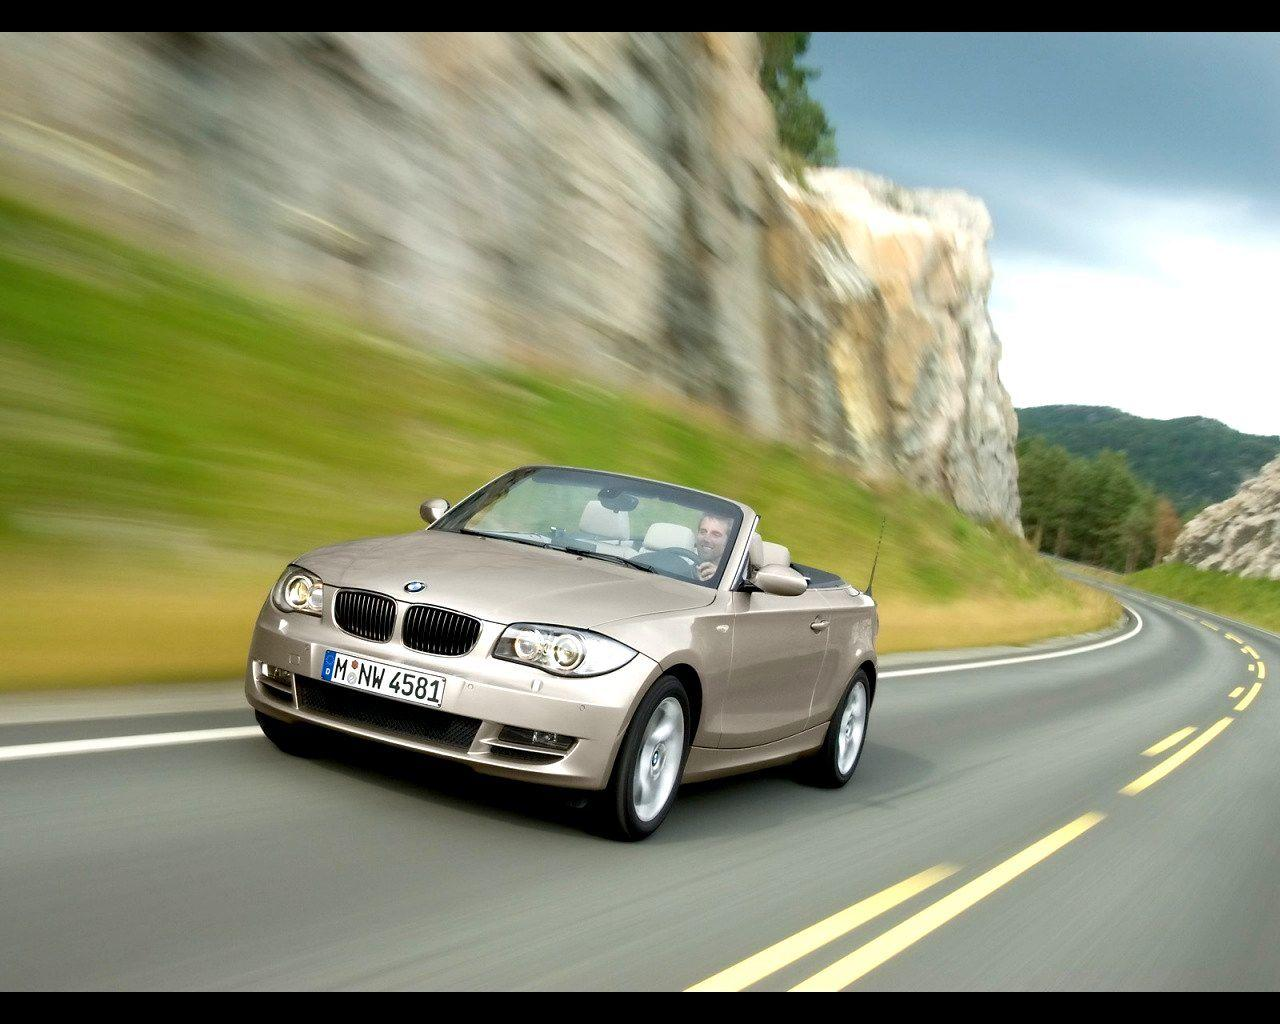 2008 BMW 1 Series Convertible Wallpaper 14 - 1280x1024